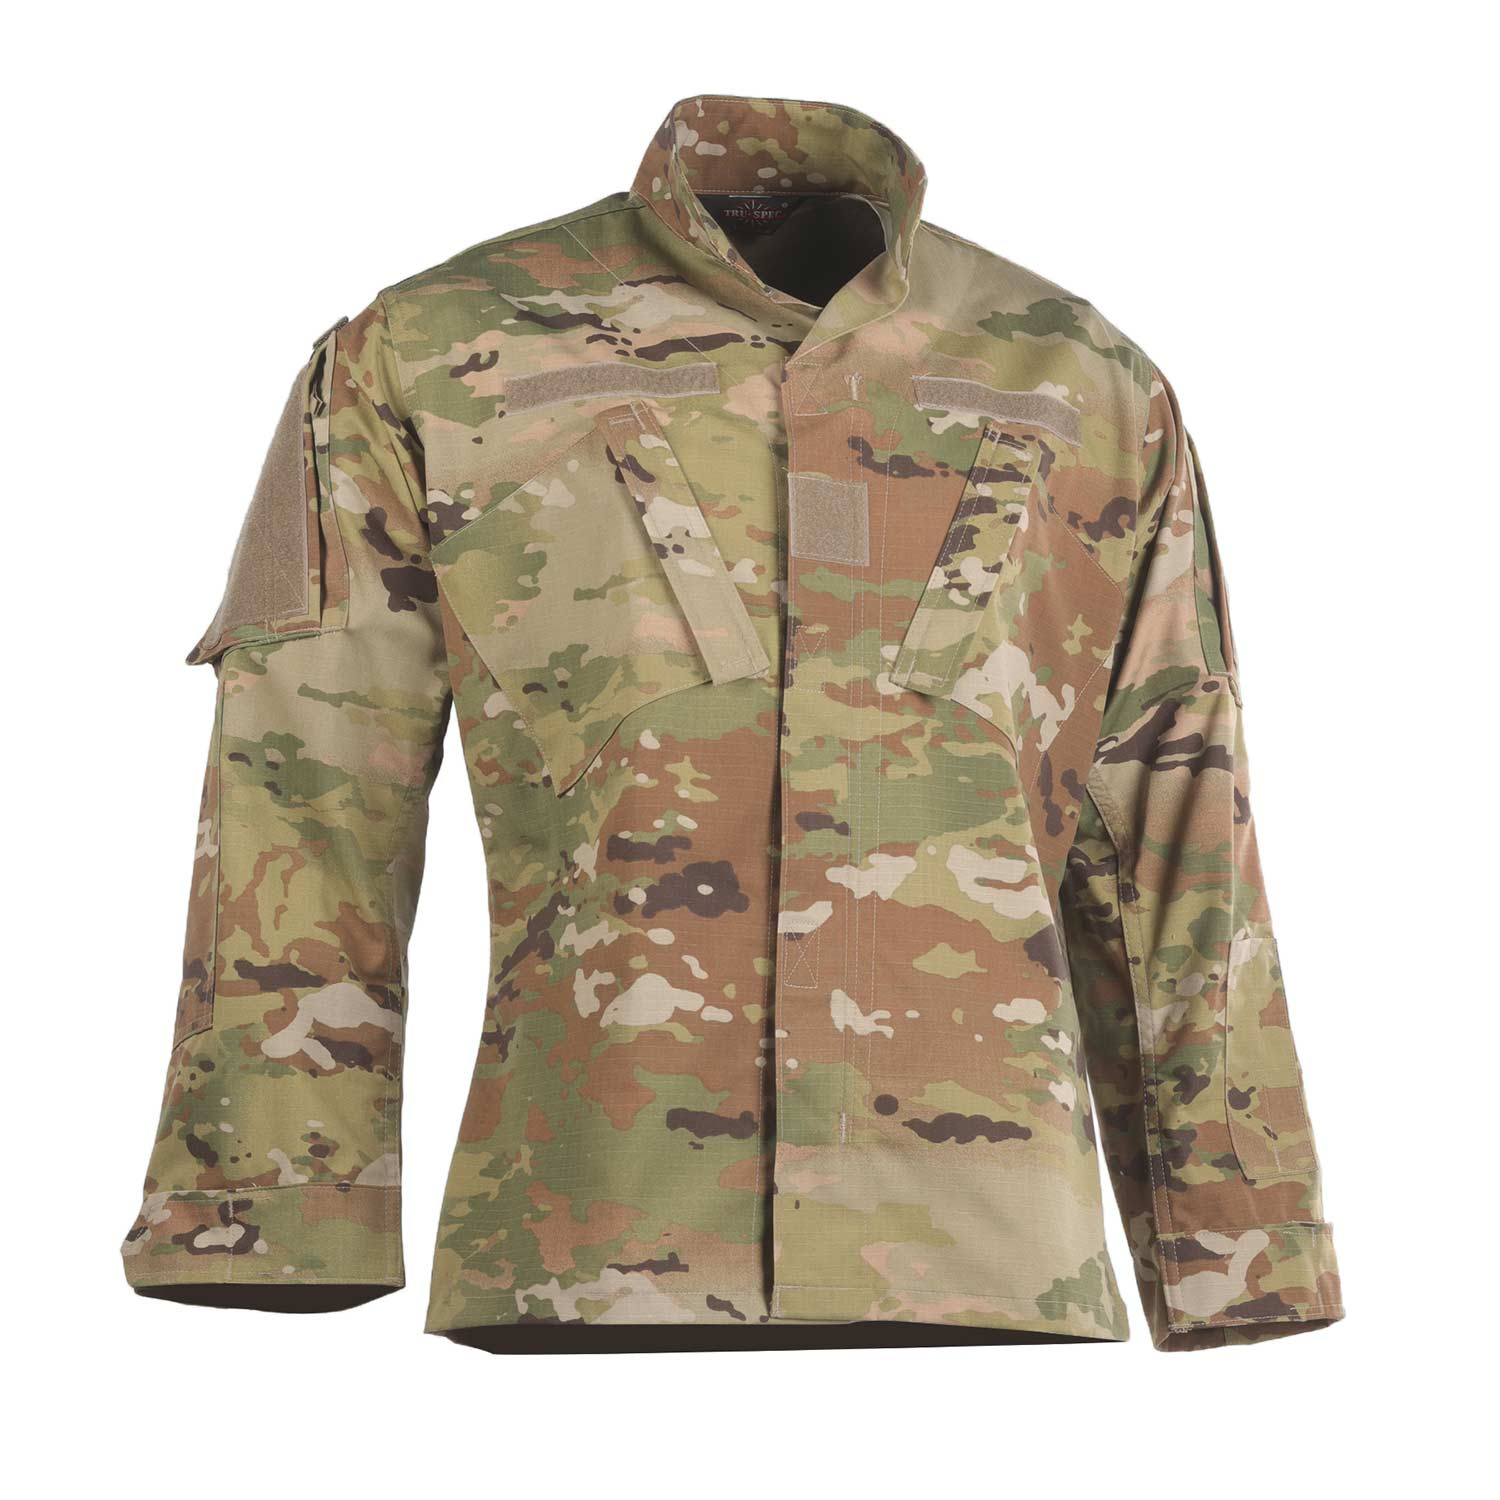 TRU-SPEC OCP Scorpion W2 Army Combat Uniform Shirt